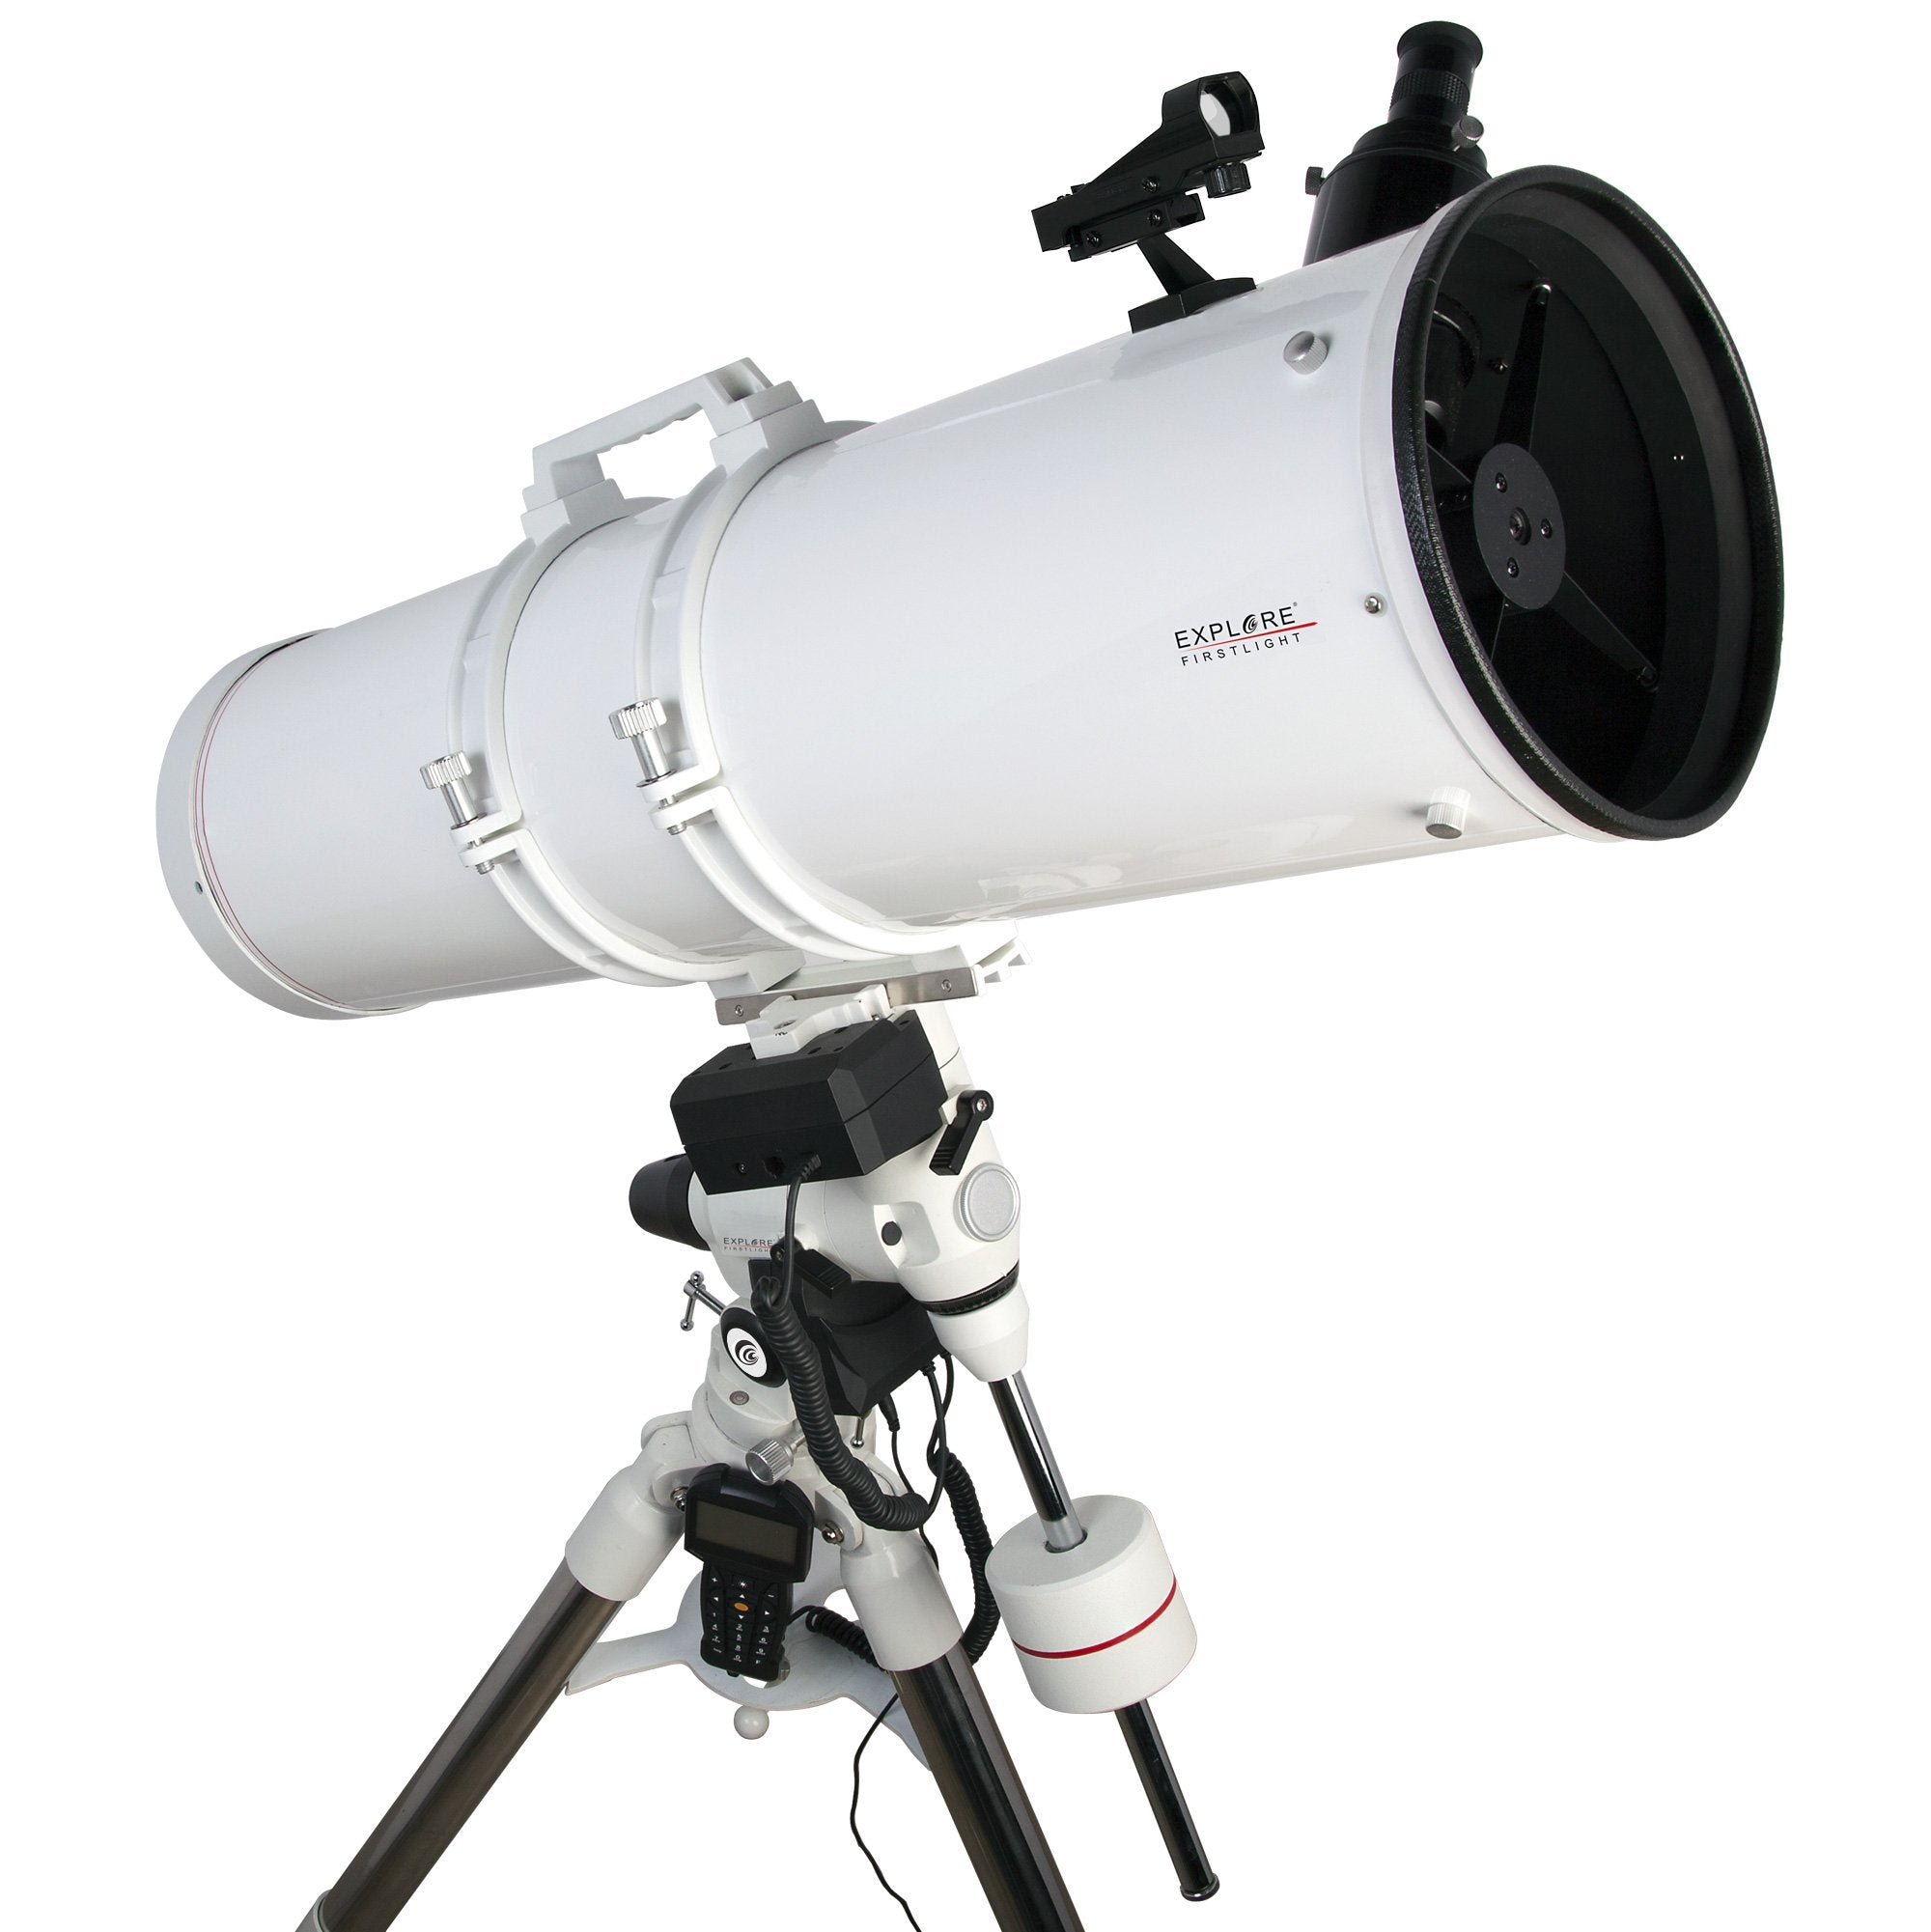 Explore FirstLight 150mm Newtonian w/ EXOS2GT GoTo Mount